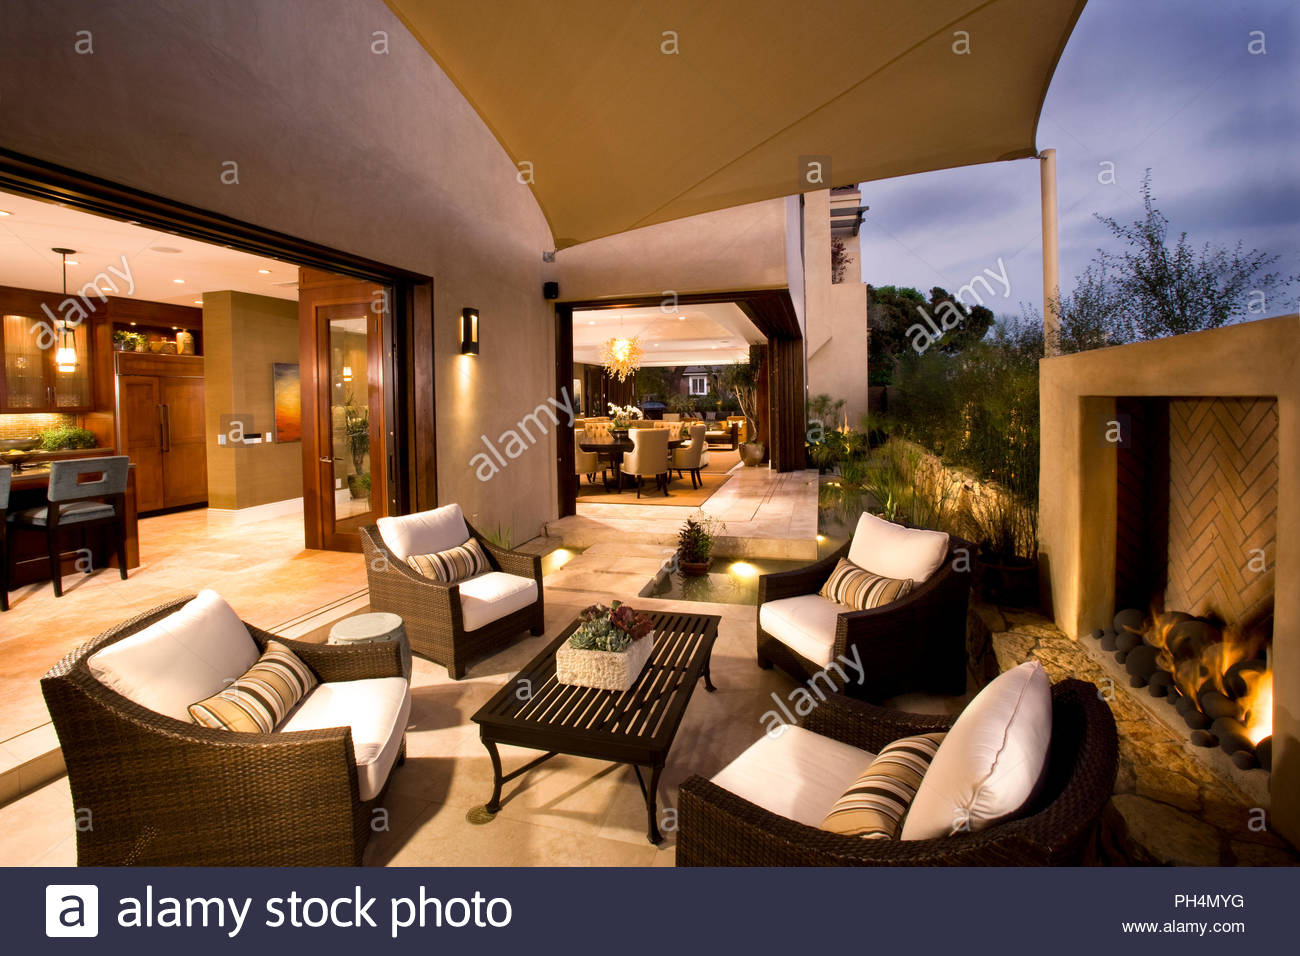 Outdoor chairs by fireplace on patio - Stock Image